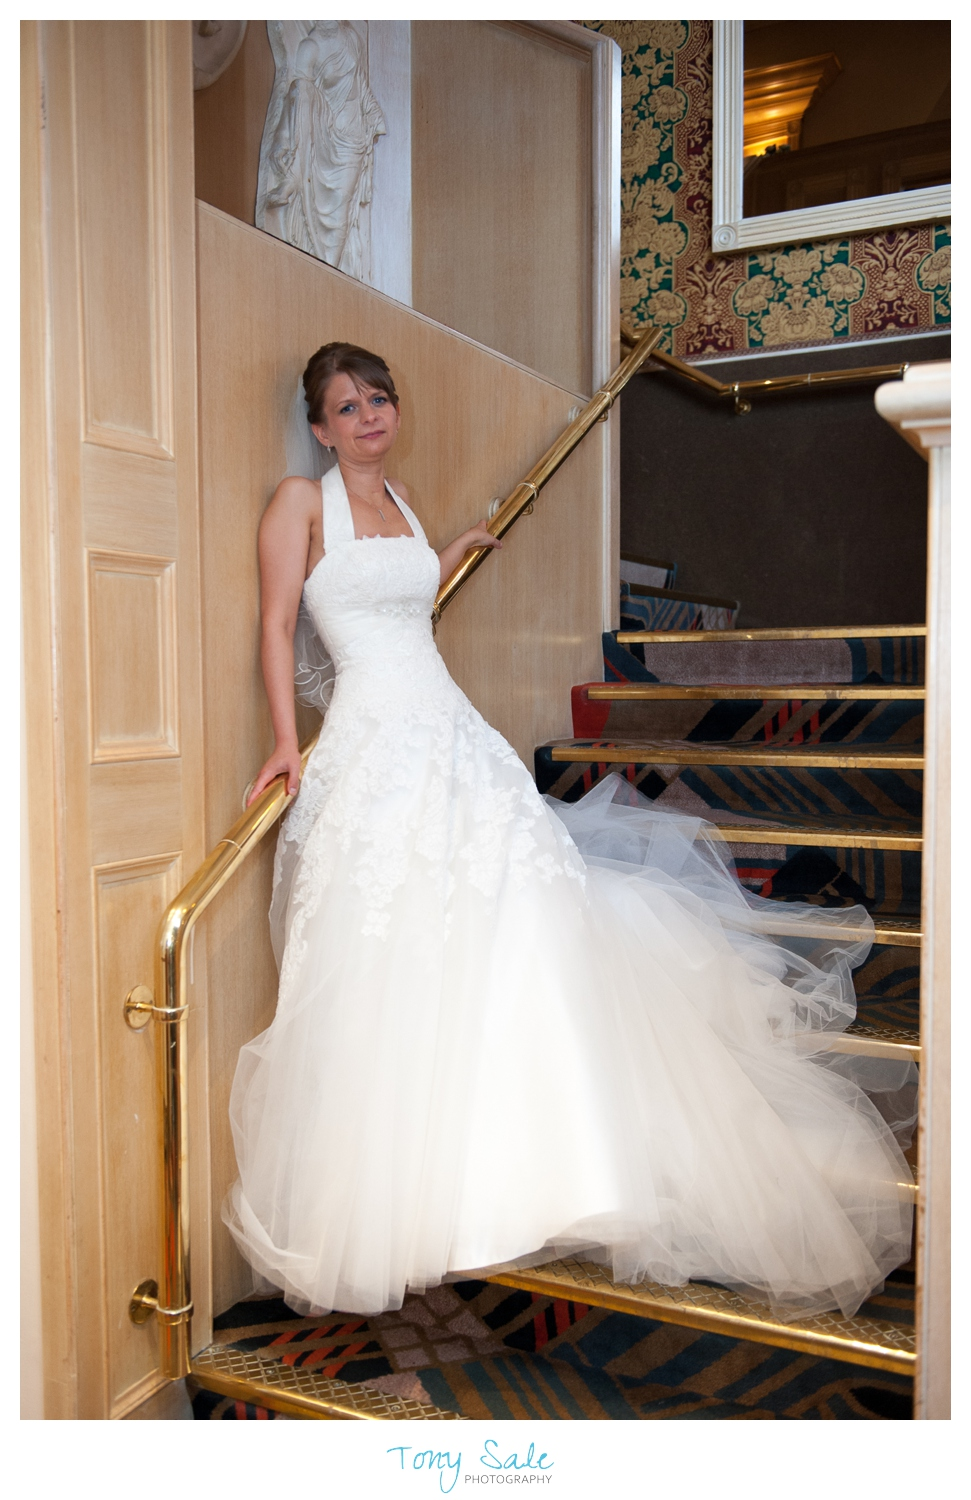 Beautiful image of the bride on the stairs